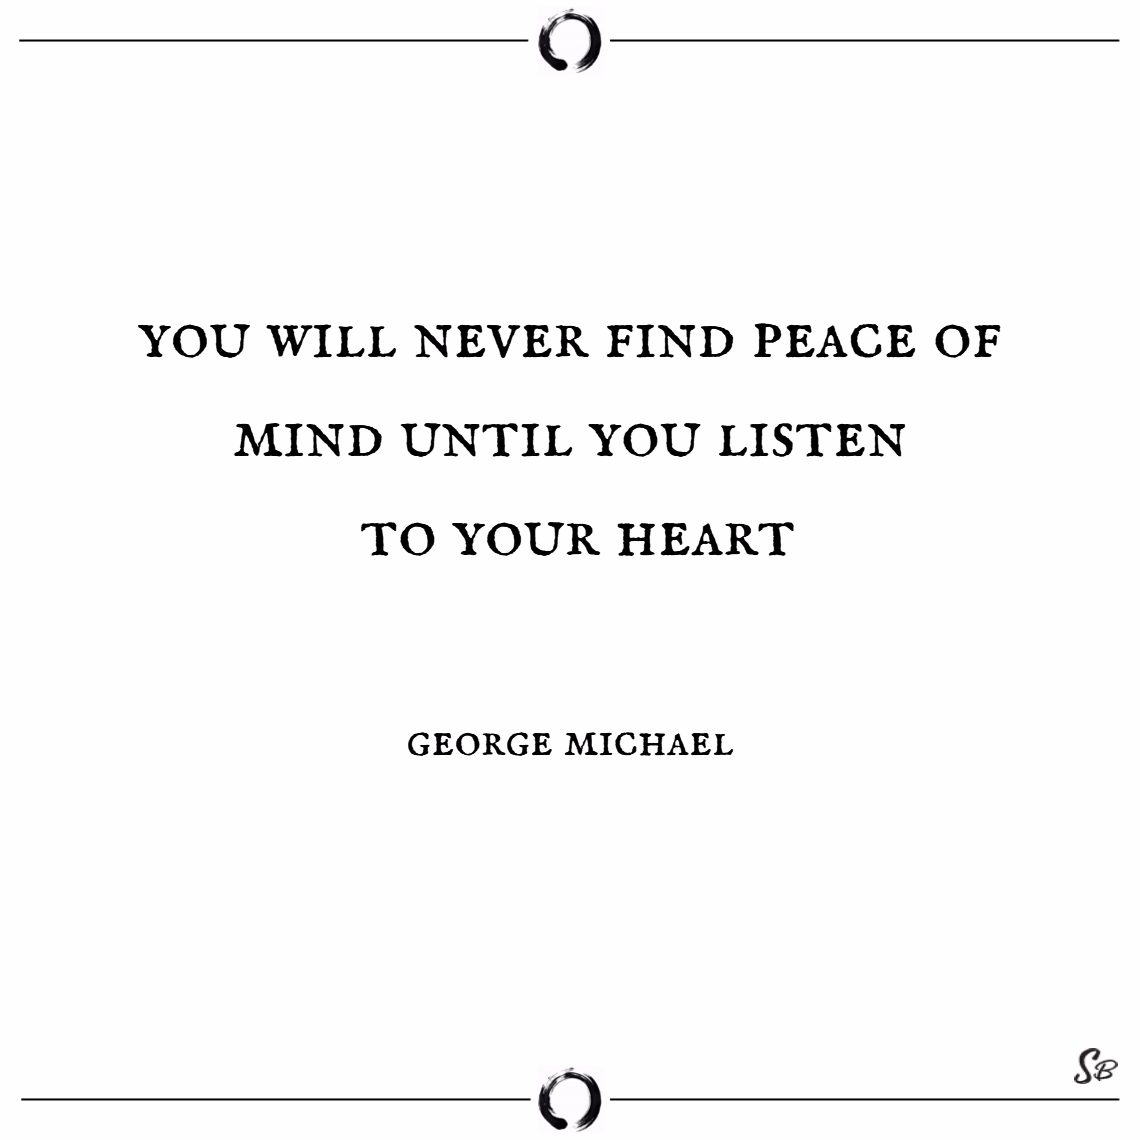 You'll never find peace of mind until you listen - peace of mind quotes